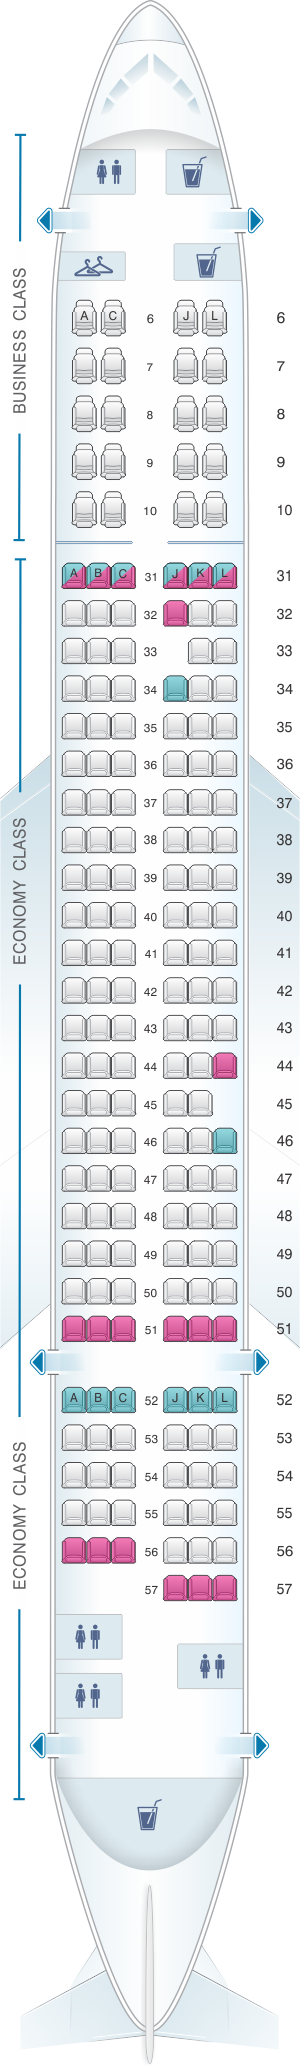 Seat Map China Eastern Airlines Airbus A321 200 SeatMaestro - Us Airways A321 Seat Map